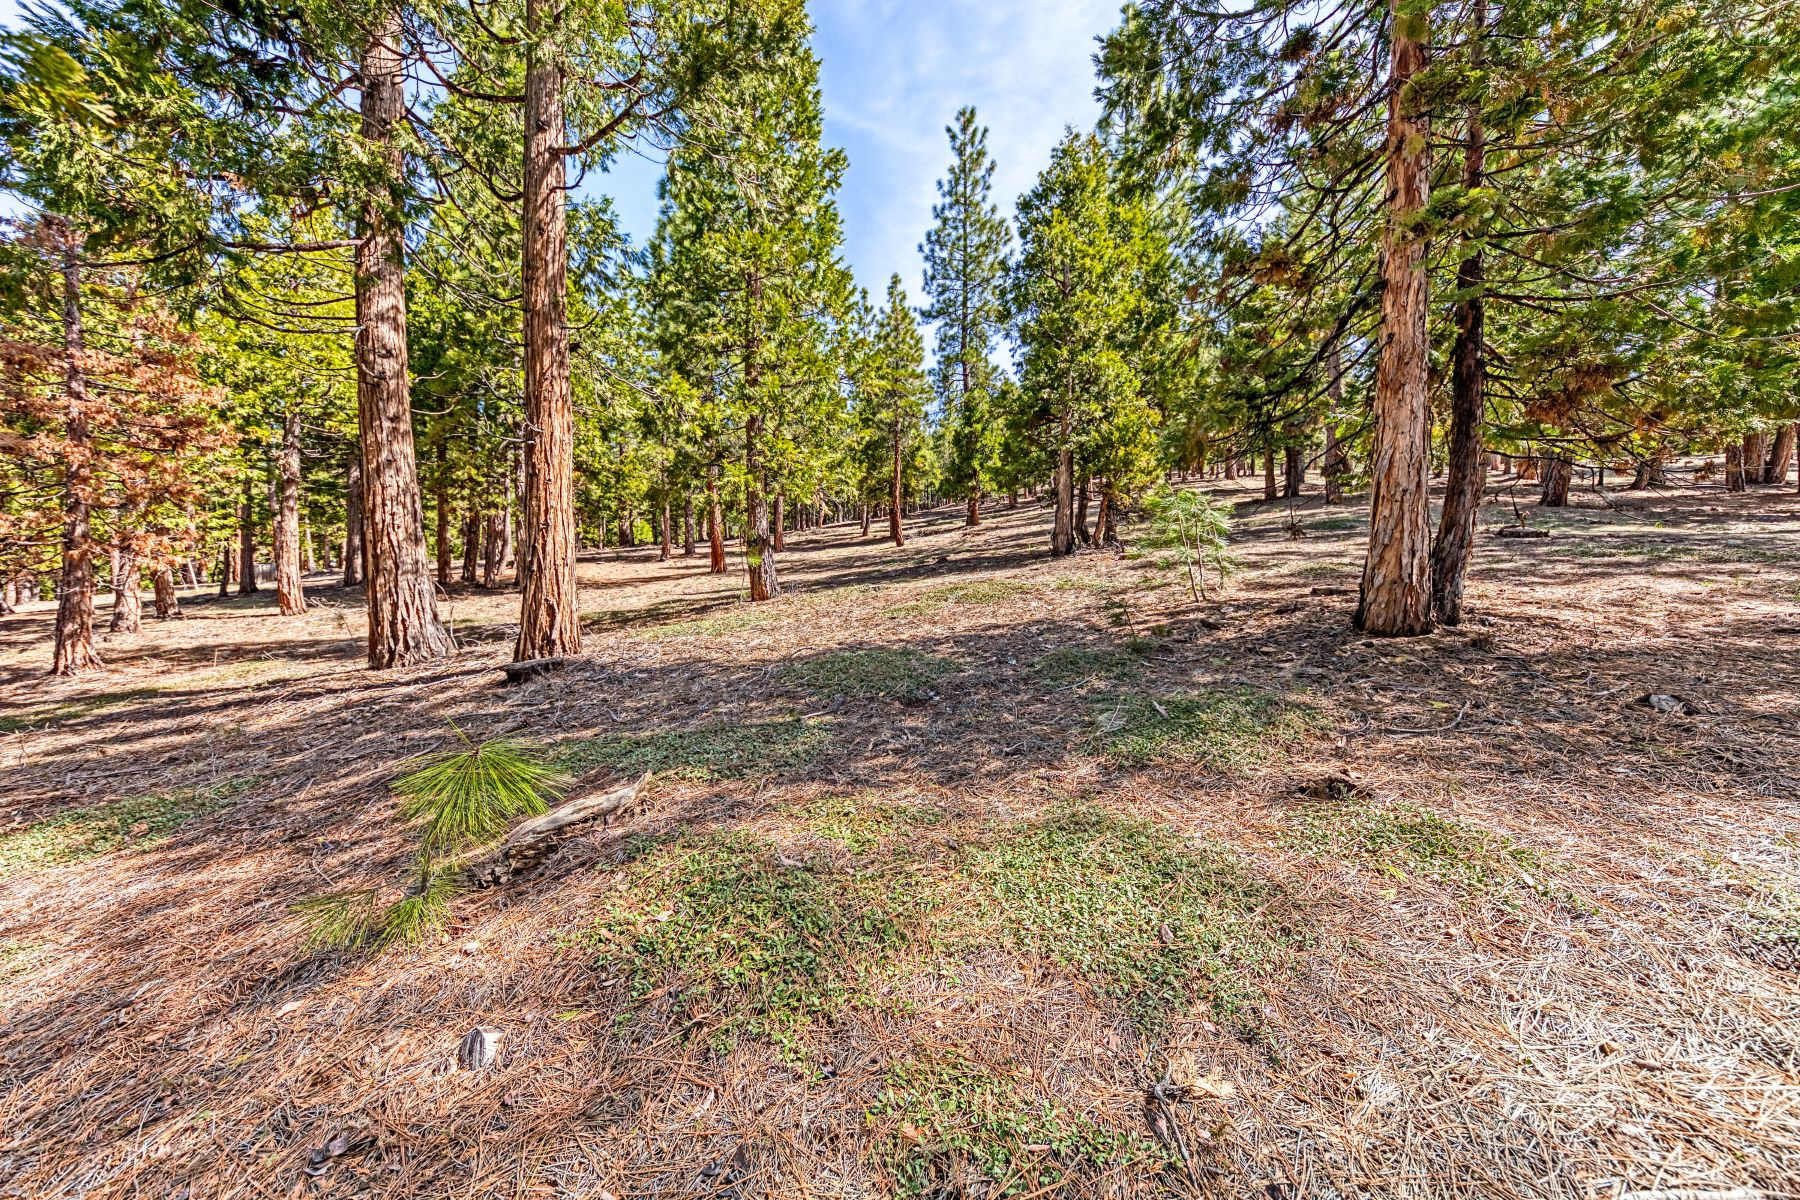 Land for Active at 696 Blacktail Ridge, Portola, CA, 96122 696 Blacktail Ridge Portola, California 96122 United States